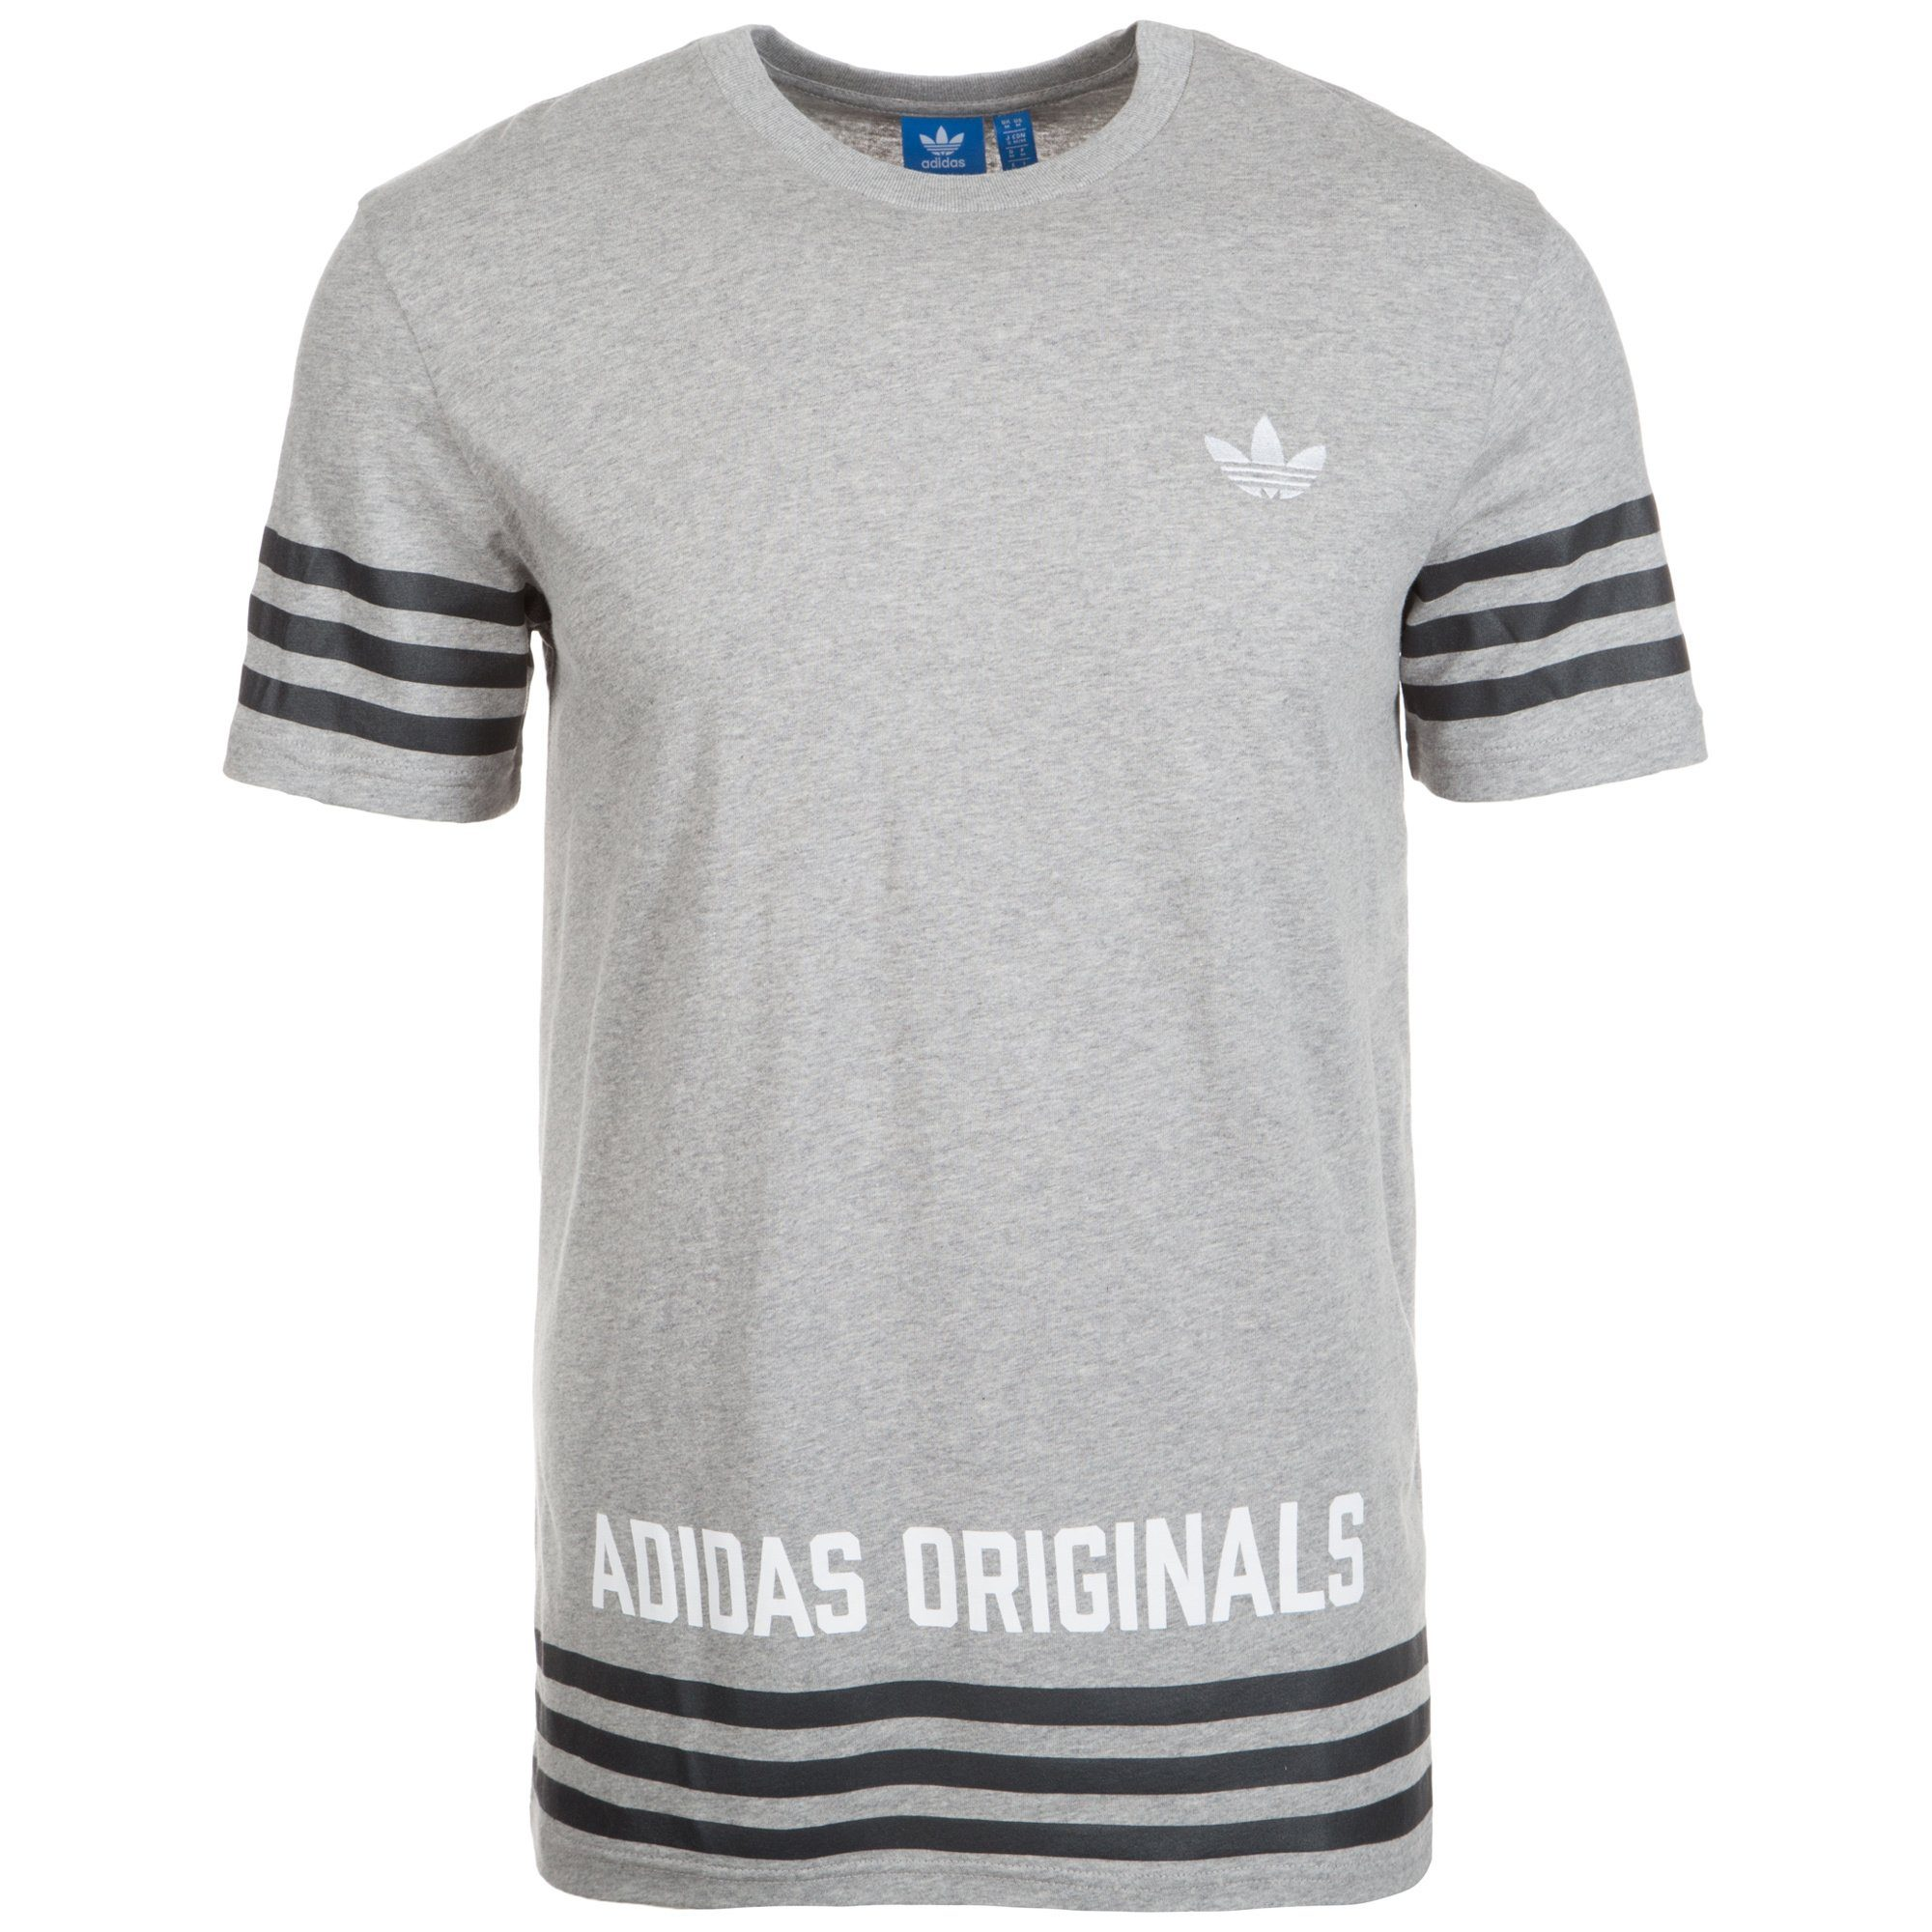 adidas Originals Street Graphic T-Shirt Herren